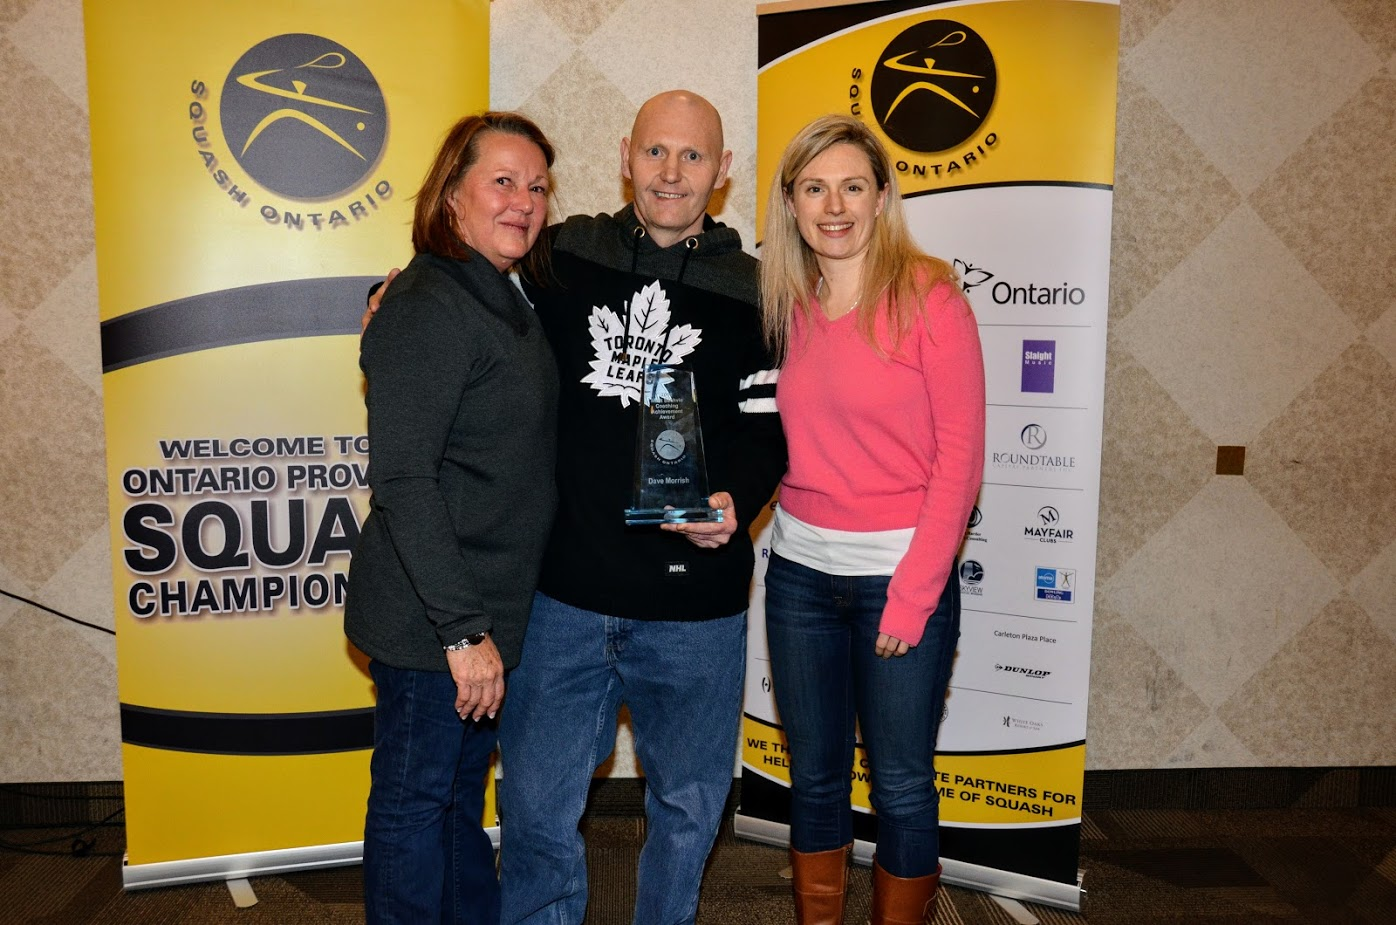 Dave pictured with Cindy Sachvie (left) and 2017 award recipient Marci Sier (right).